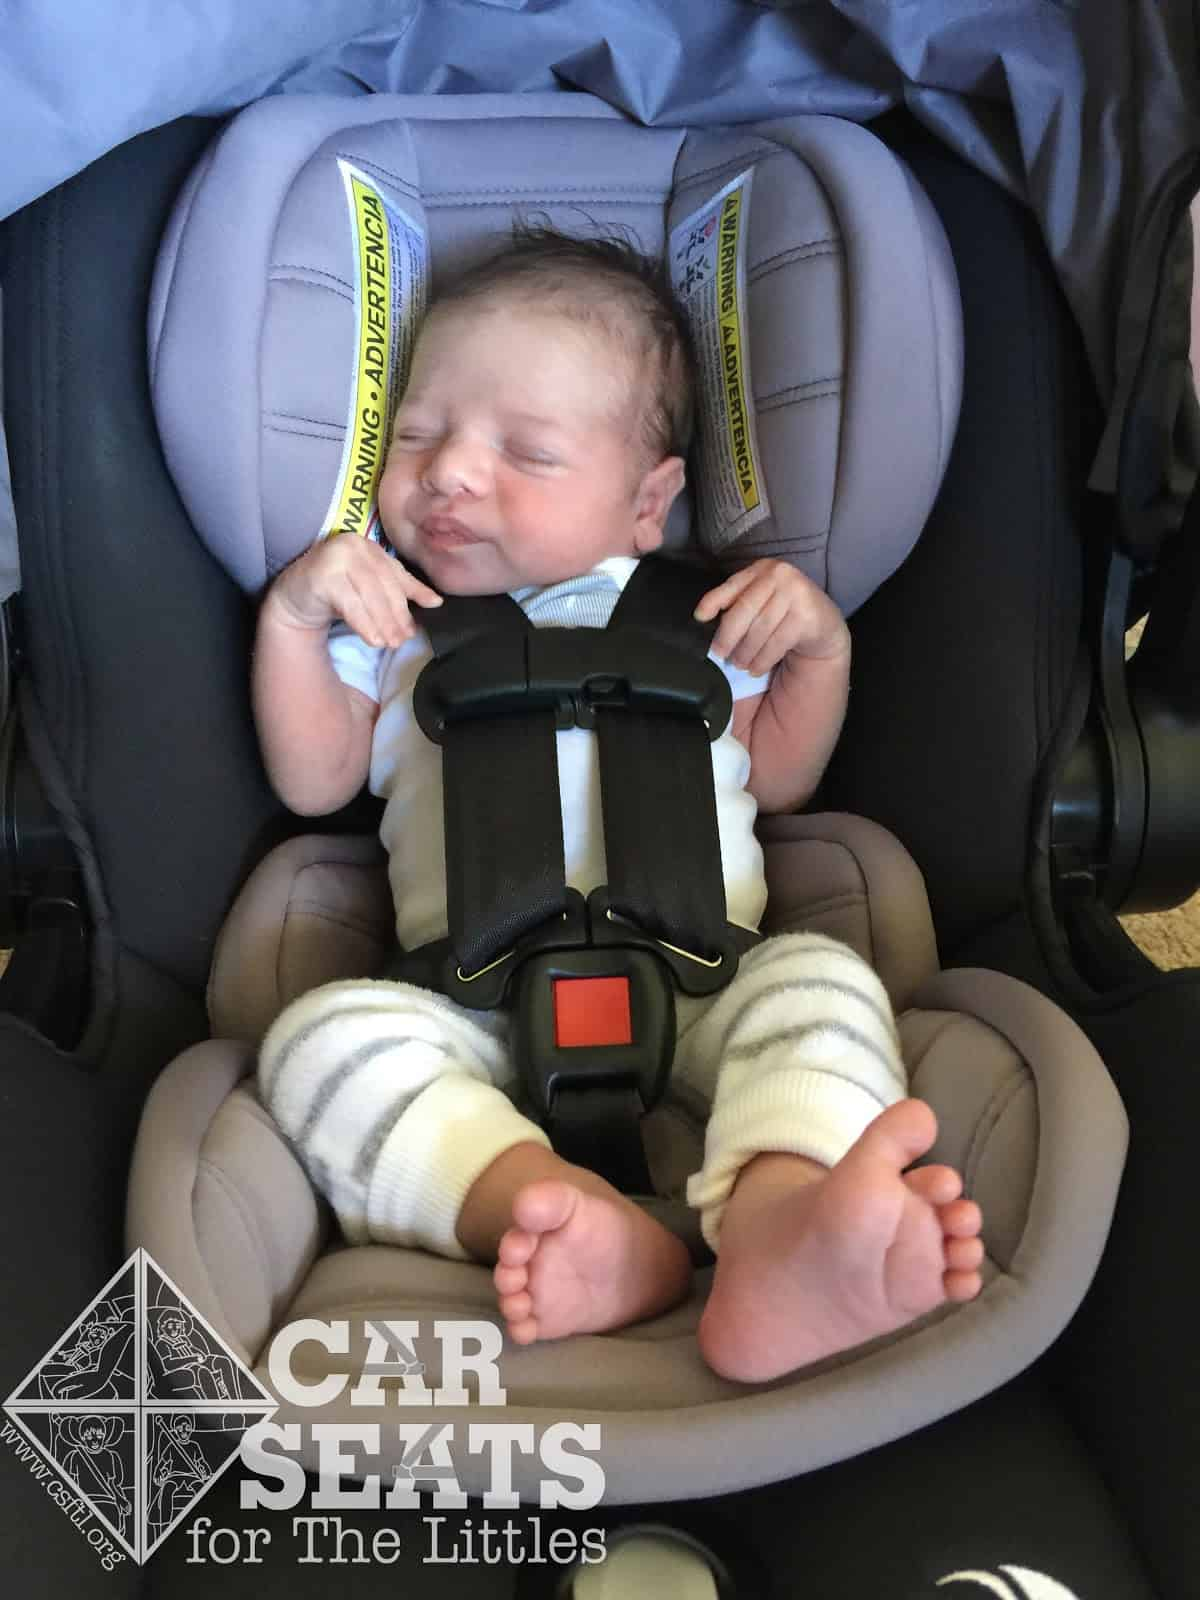 Baby Jogger City Go: 2 weeks old, 9 lbs, 20 inches tall